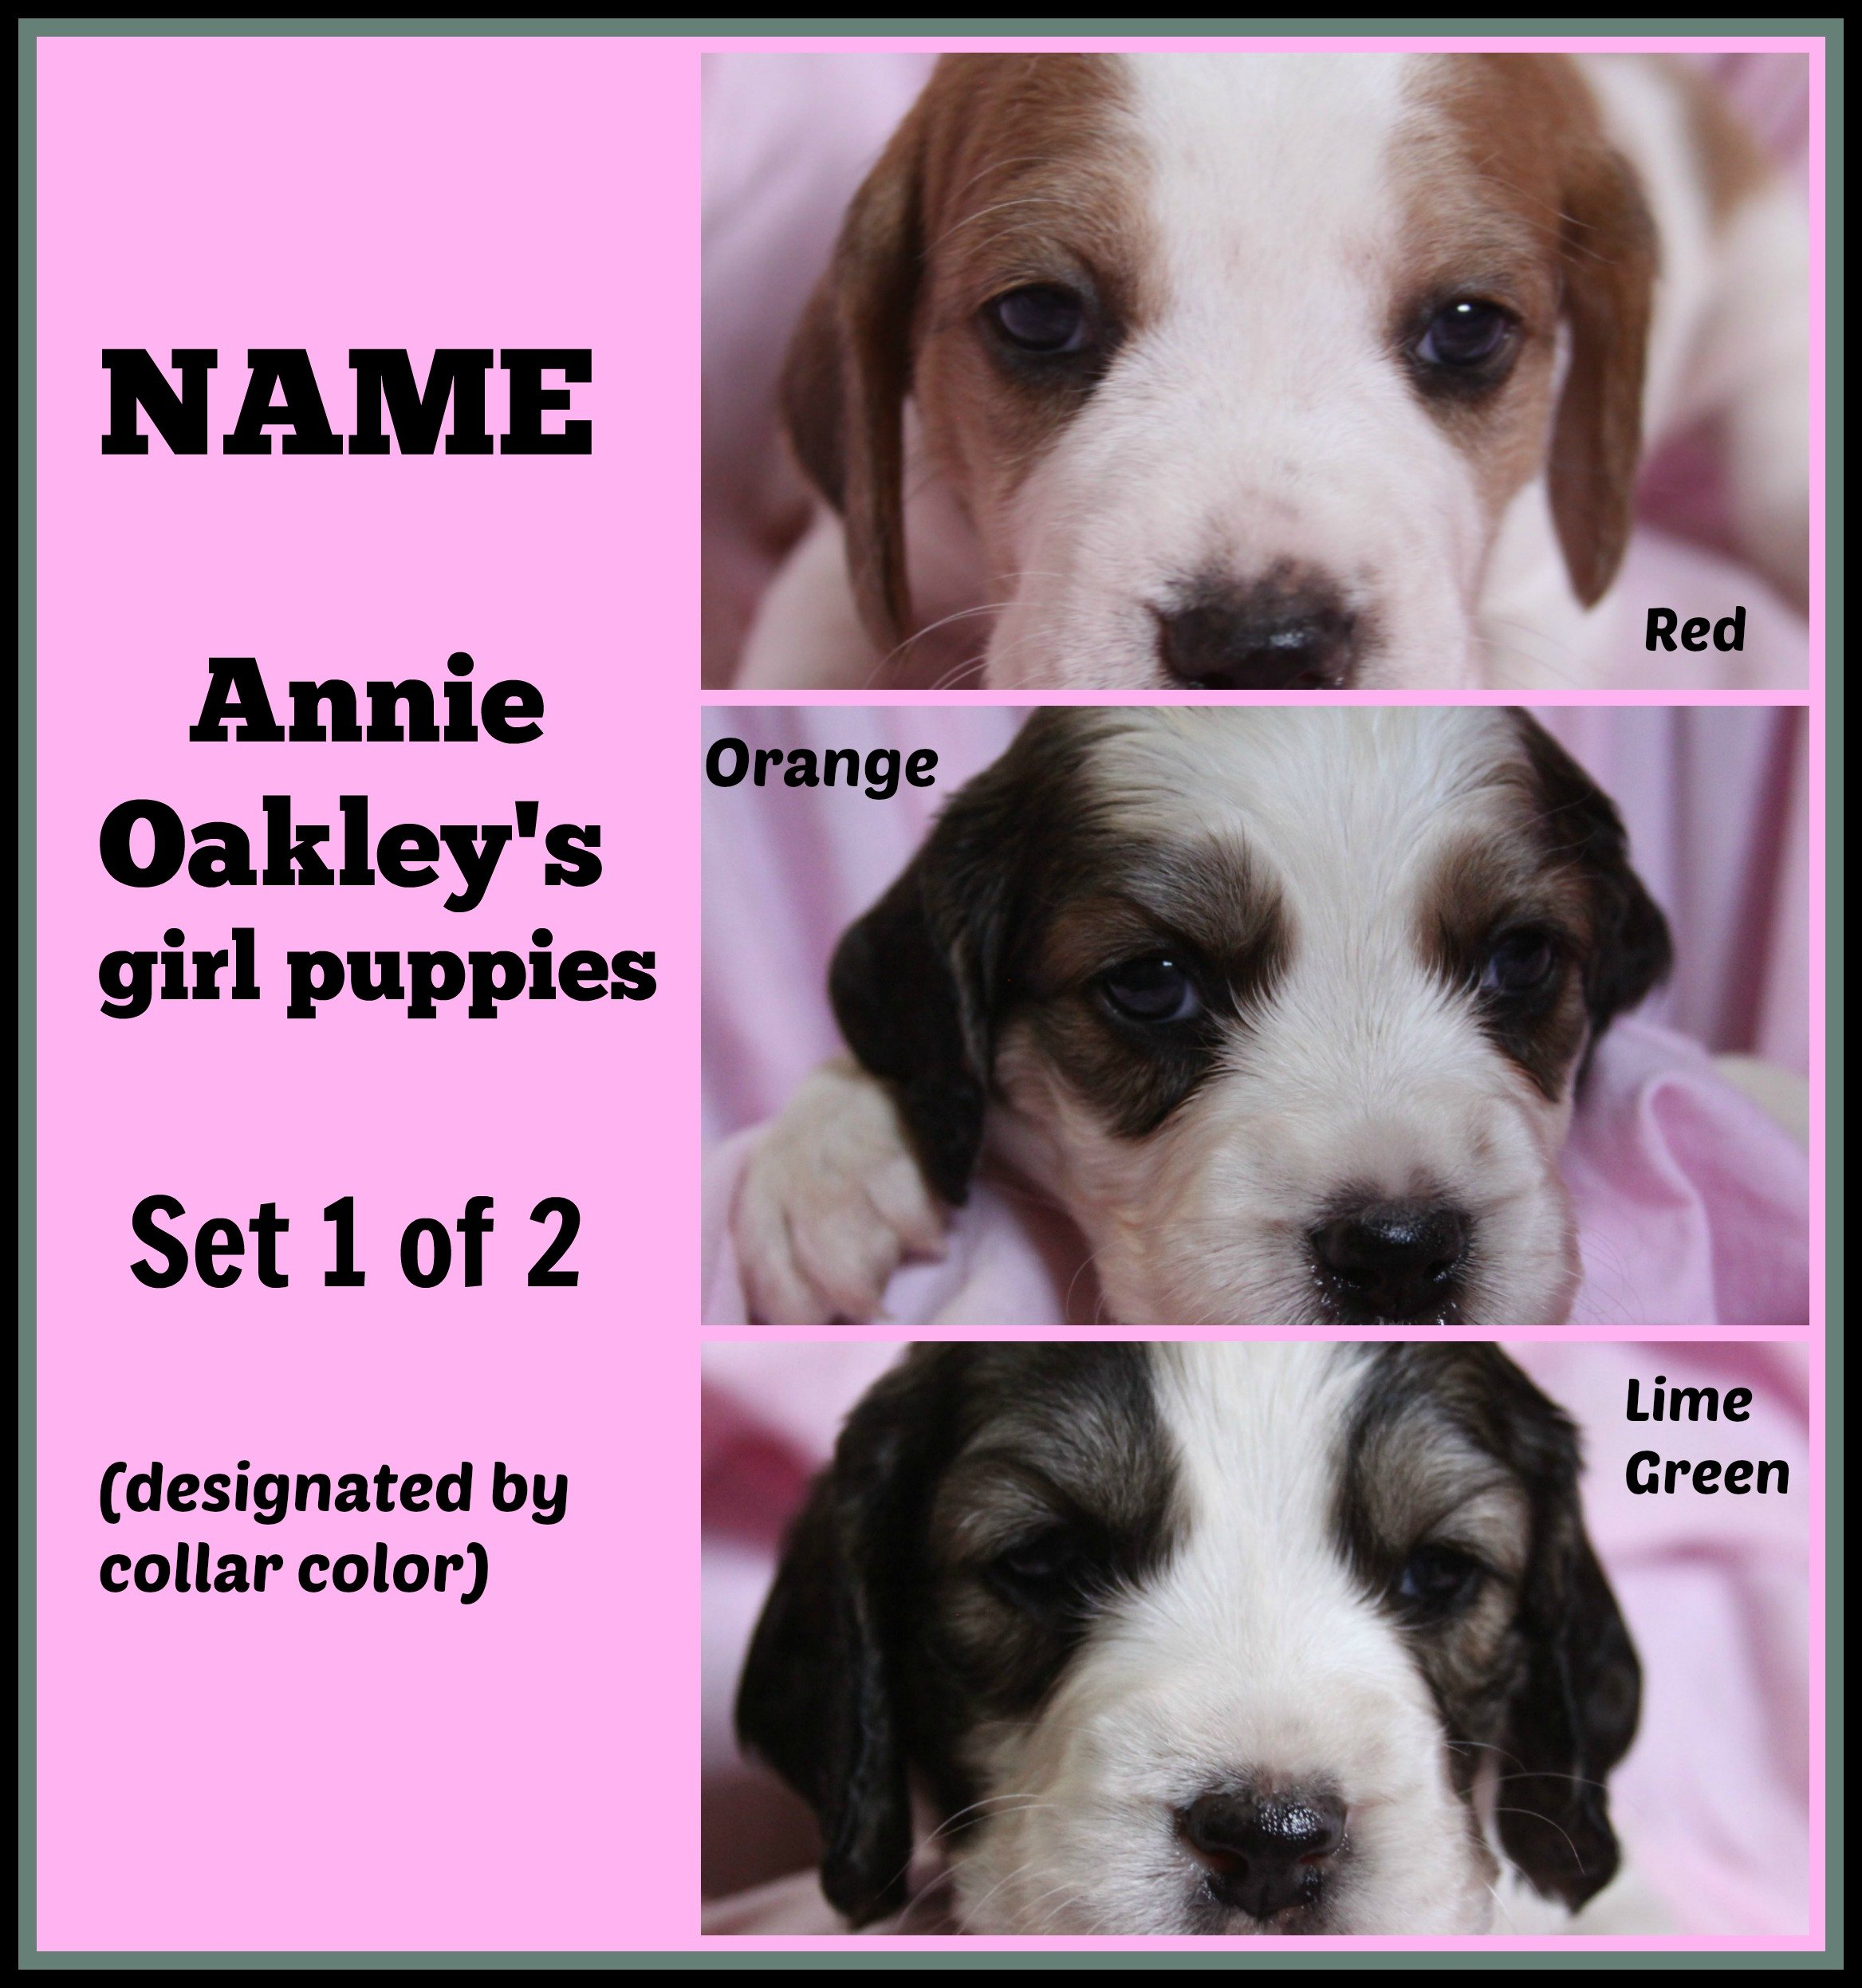 Puppy Naming Contest – Name Annie Oakley's 9 Puppies